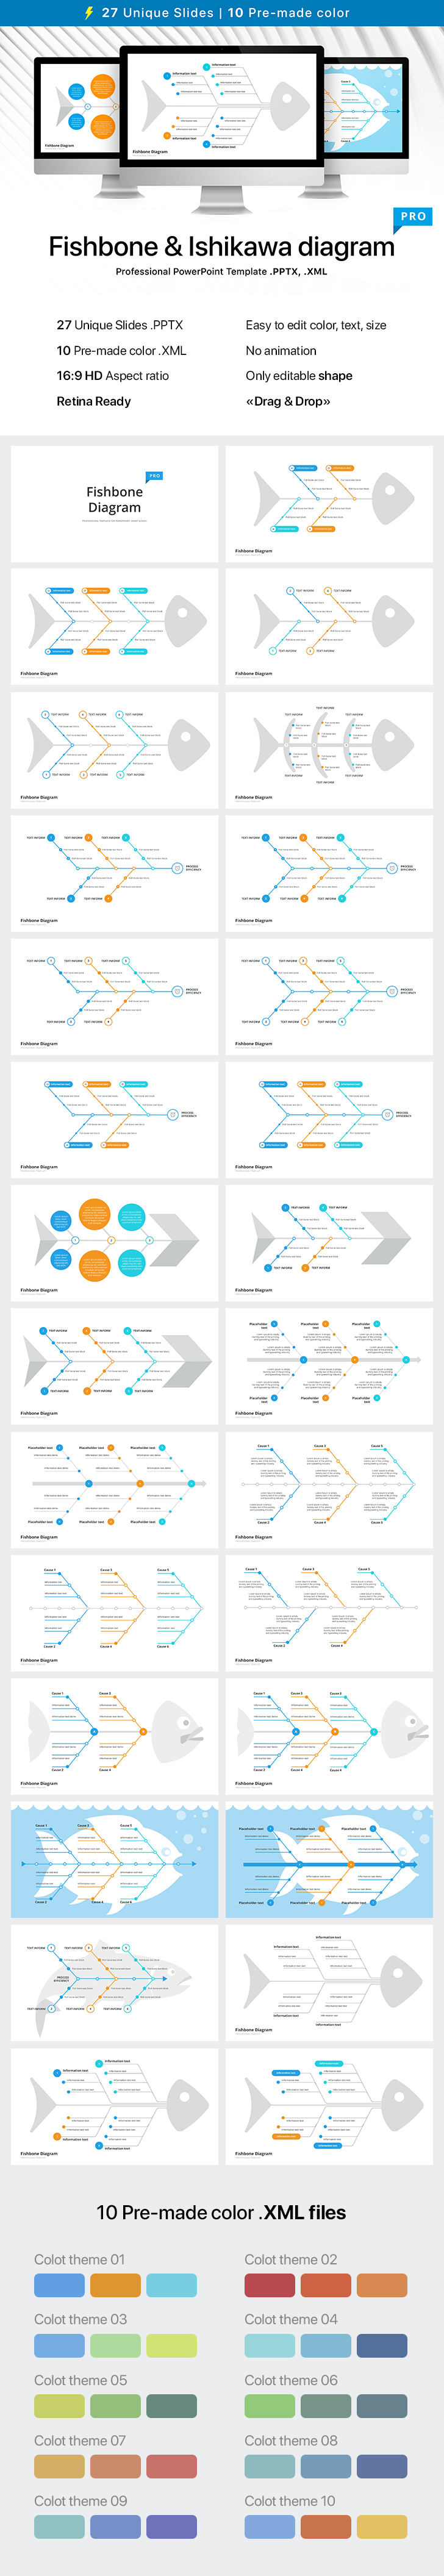 fishbone diagram template for powerpoint powerpoint template